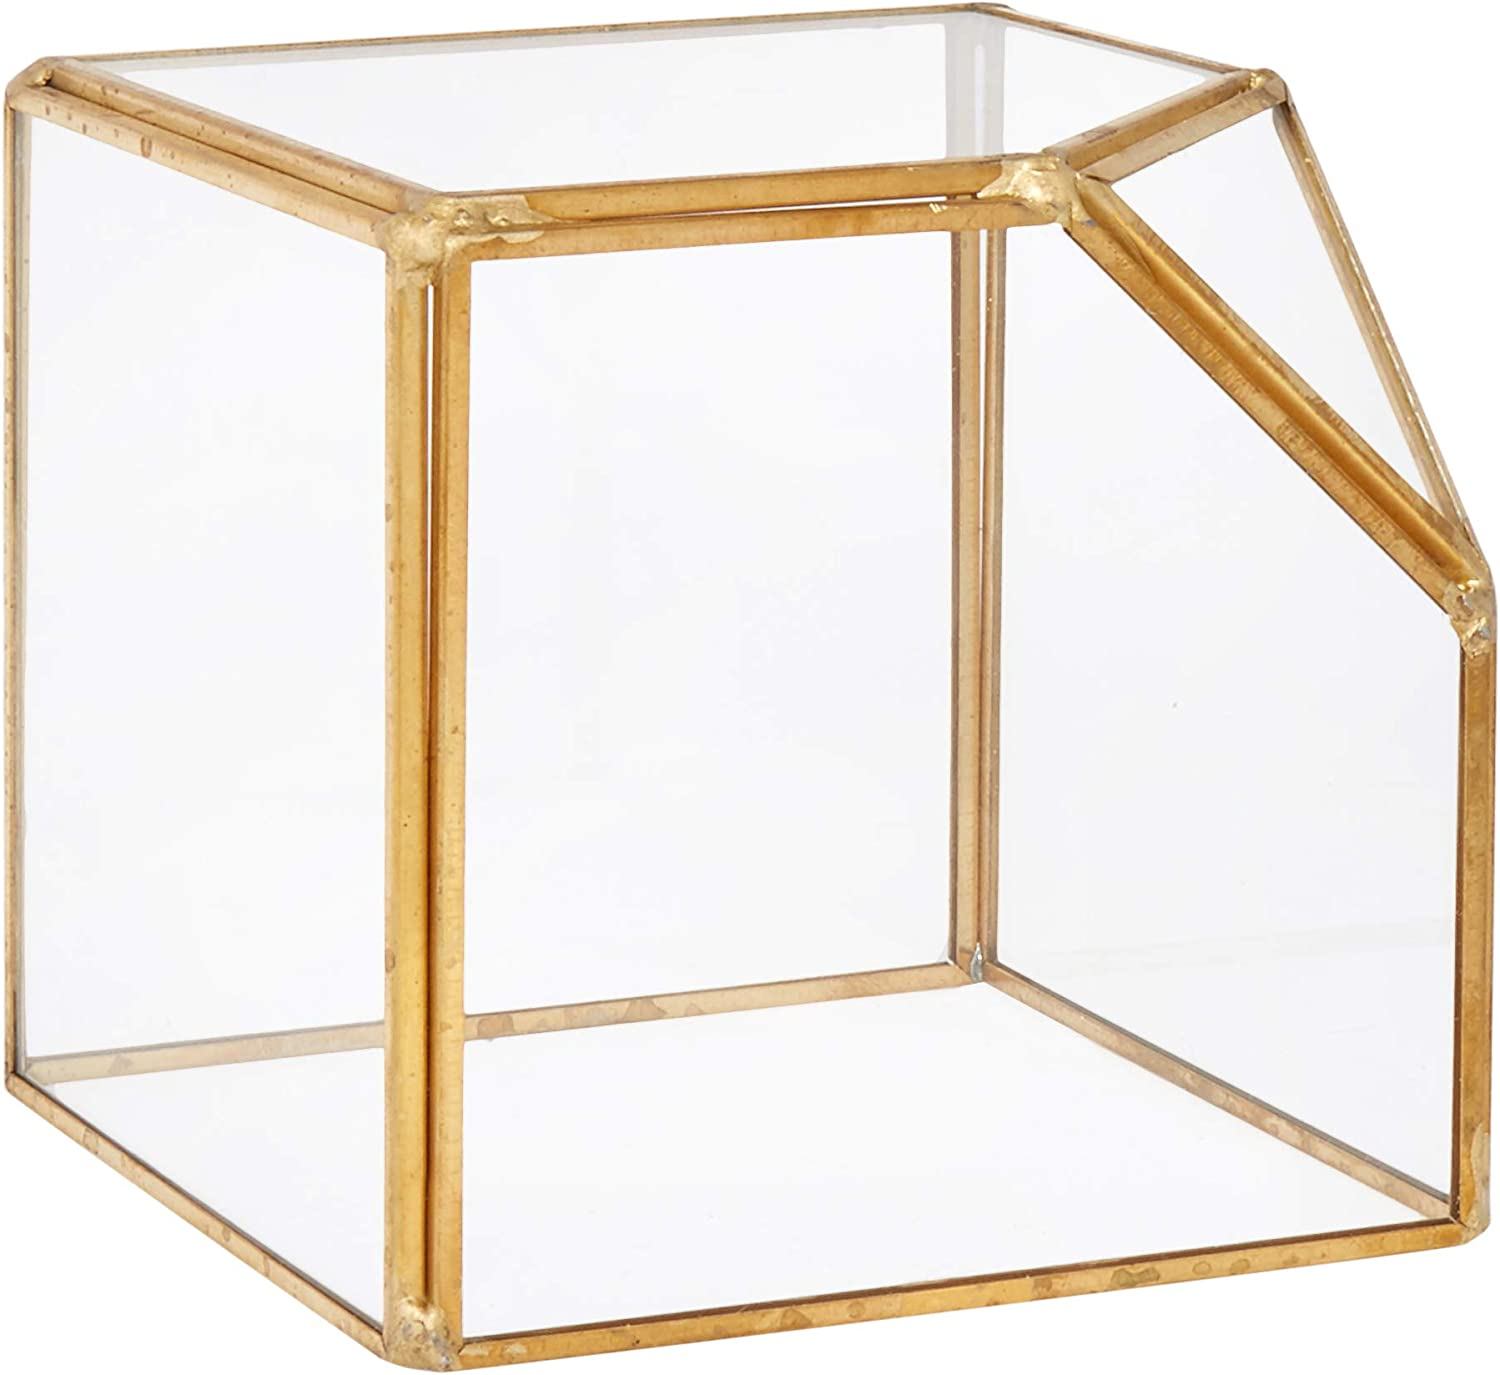 "Circleware Terraria Glass Plant Terrarium with Metal Frame, Home-Decor Flower Balcony Display Box and Garden Gifts, 7.87""x10.24"", Square-Gold-7.8x10.2"